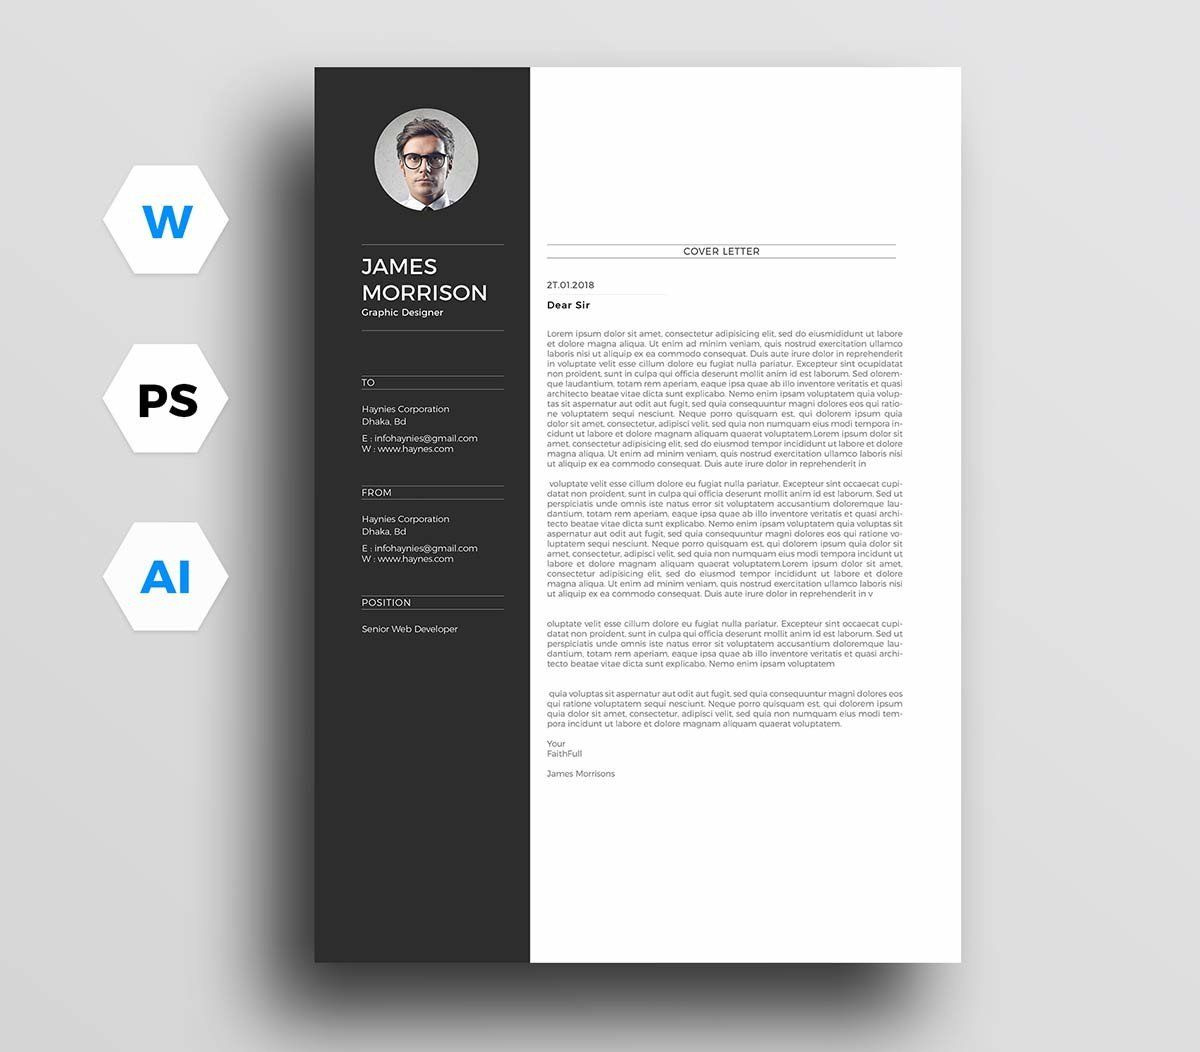 004 Fantastic Resume Cover Letter Template Microsoft Word High Def Full